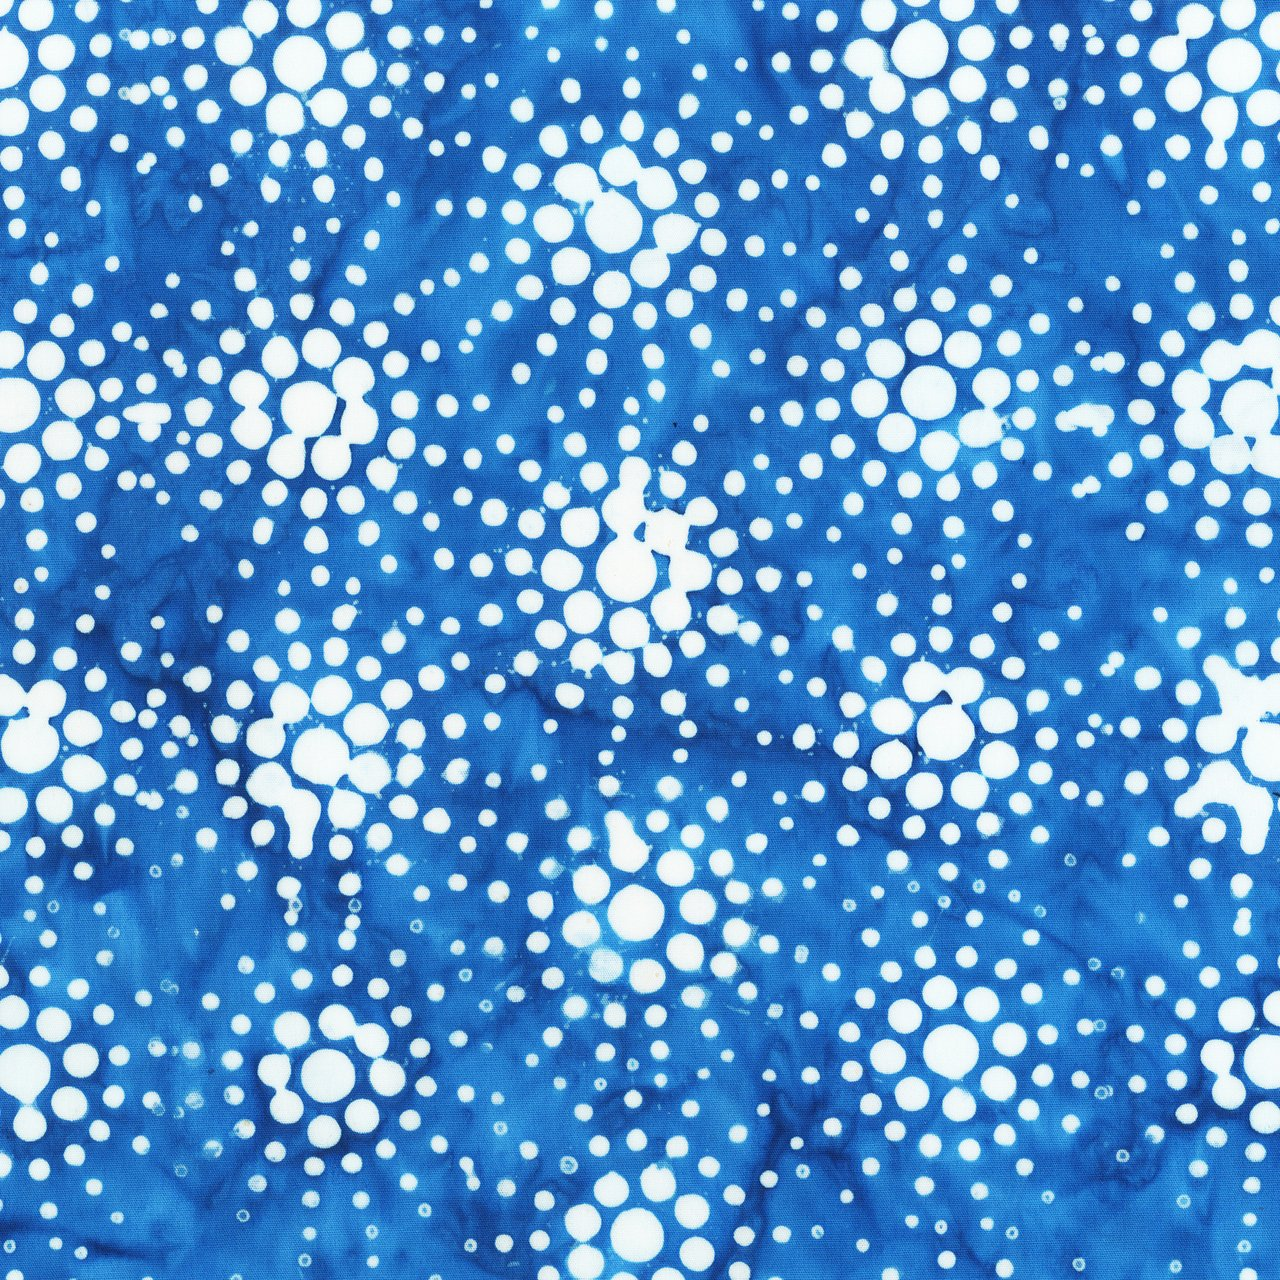 344Q-12 Sky by Jacqueline De Jonge for Anthology Fabrics